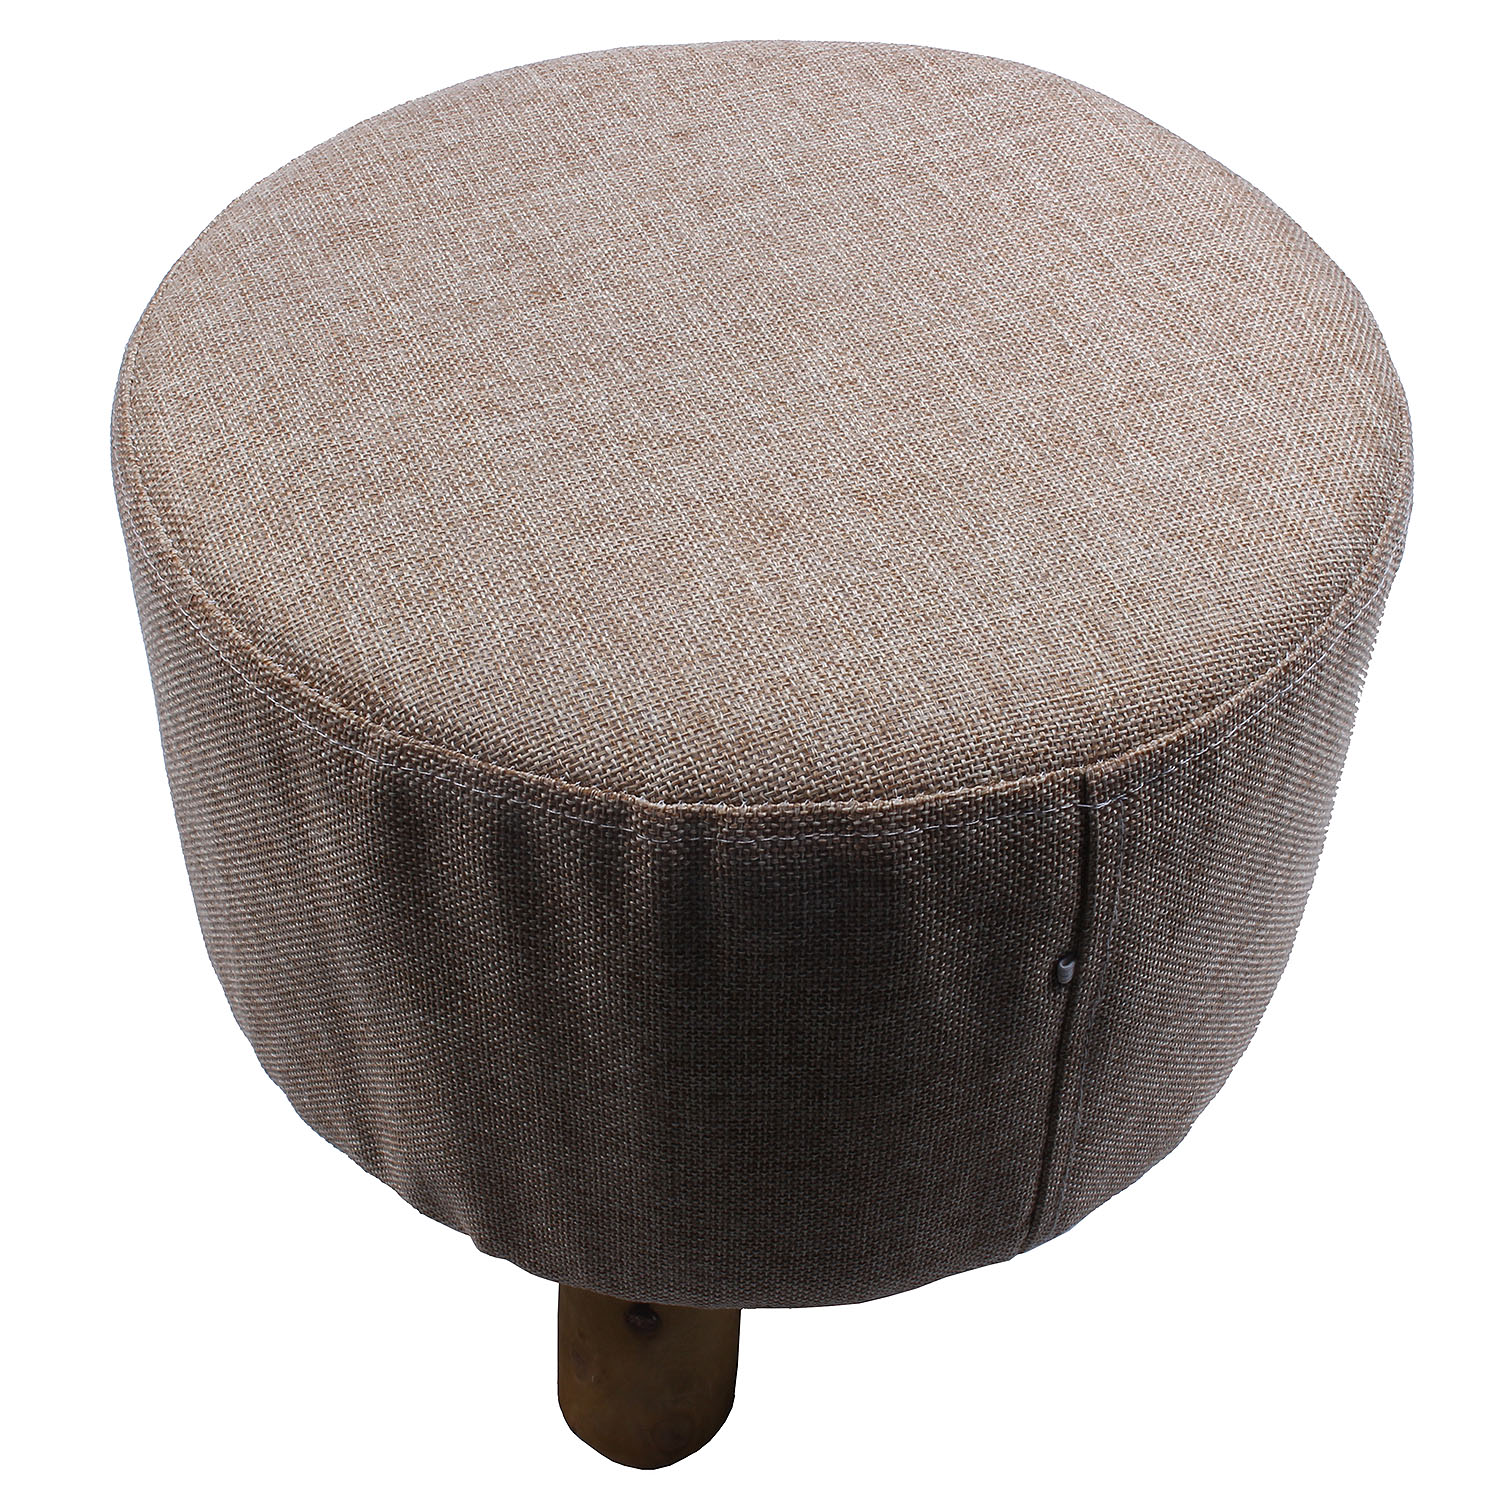 Modern Luxury Upholstered Footstool Round Pouffe Stool + Wooden Leg Pattern:Round Fabric:Grey (3 Legs) Modern Luxury Upholstered Footstool Round Pouffe Stool + Wooden Leg Pattern:Round Fabric:Grey (3 Legs)